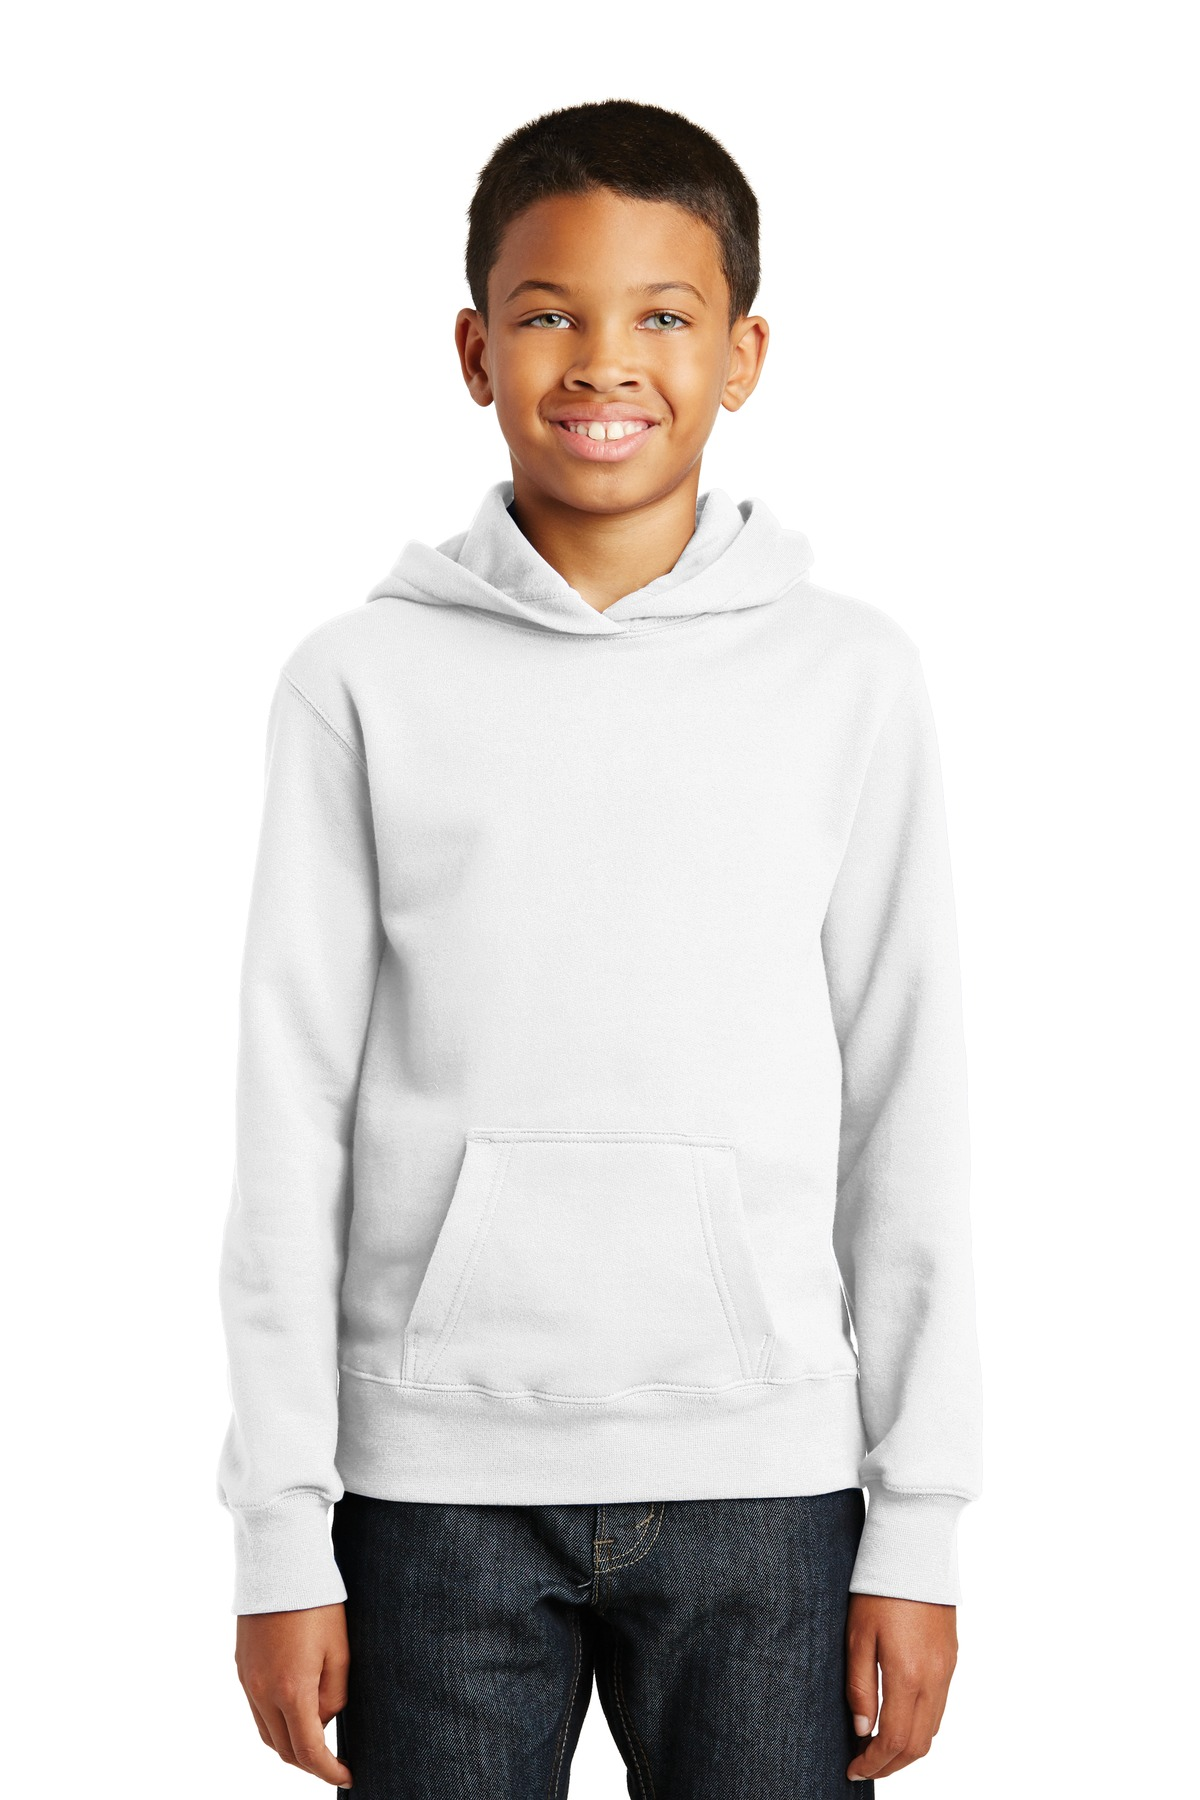 Port & Company ®  Youth Fan Favorite Fleece Pullover Hooded Sweatshirt. PC850YH - White